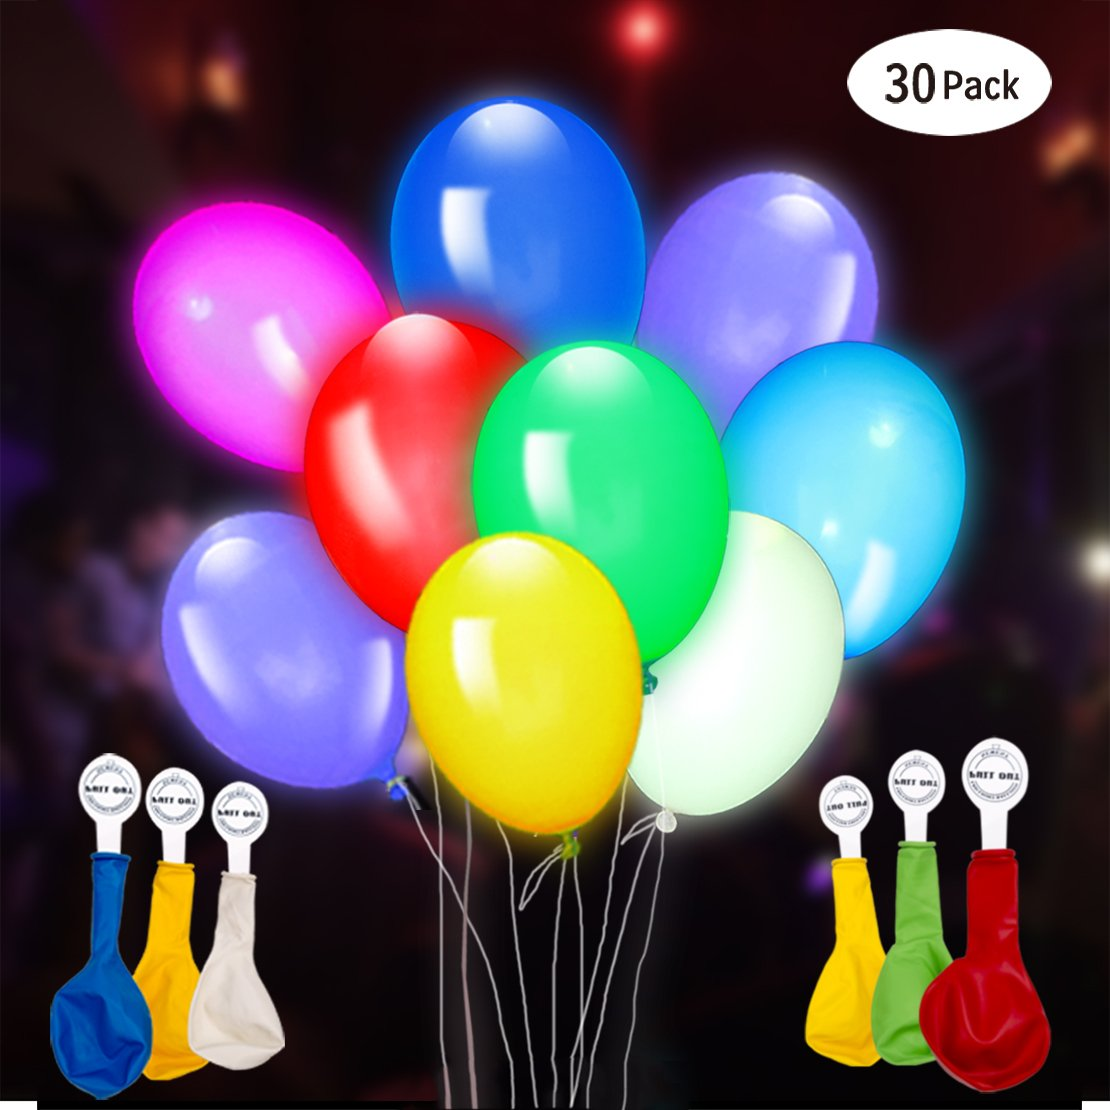 GIGALUMI 30 Pack LED Light Up Balloons, Premium Mixed-Colors Flashing Party Lights Lasts 12-24 Hours, Ideal for Parties, Birthdays and Wedding Decorations, Fillable with Helium, Air 6846